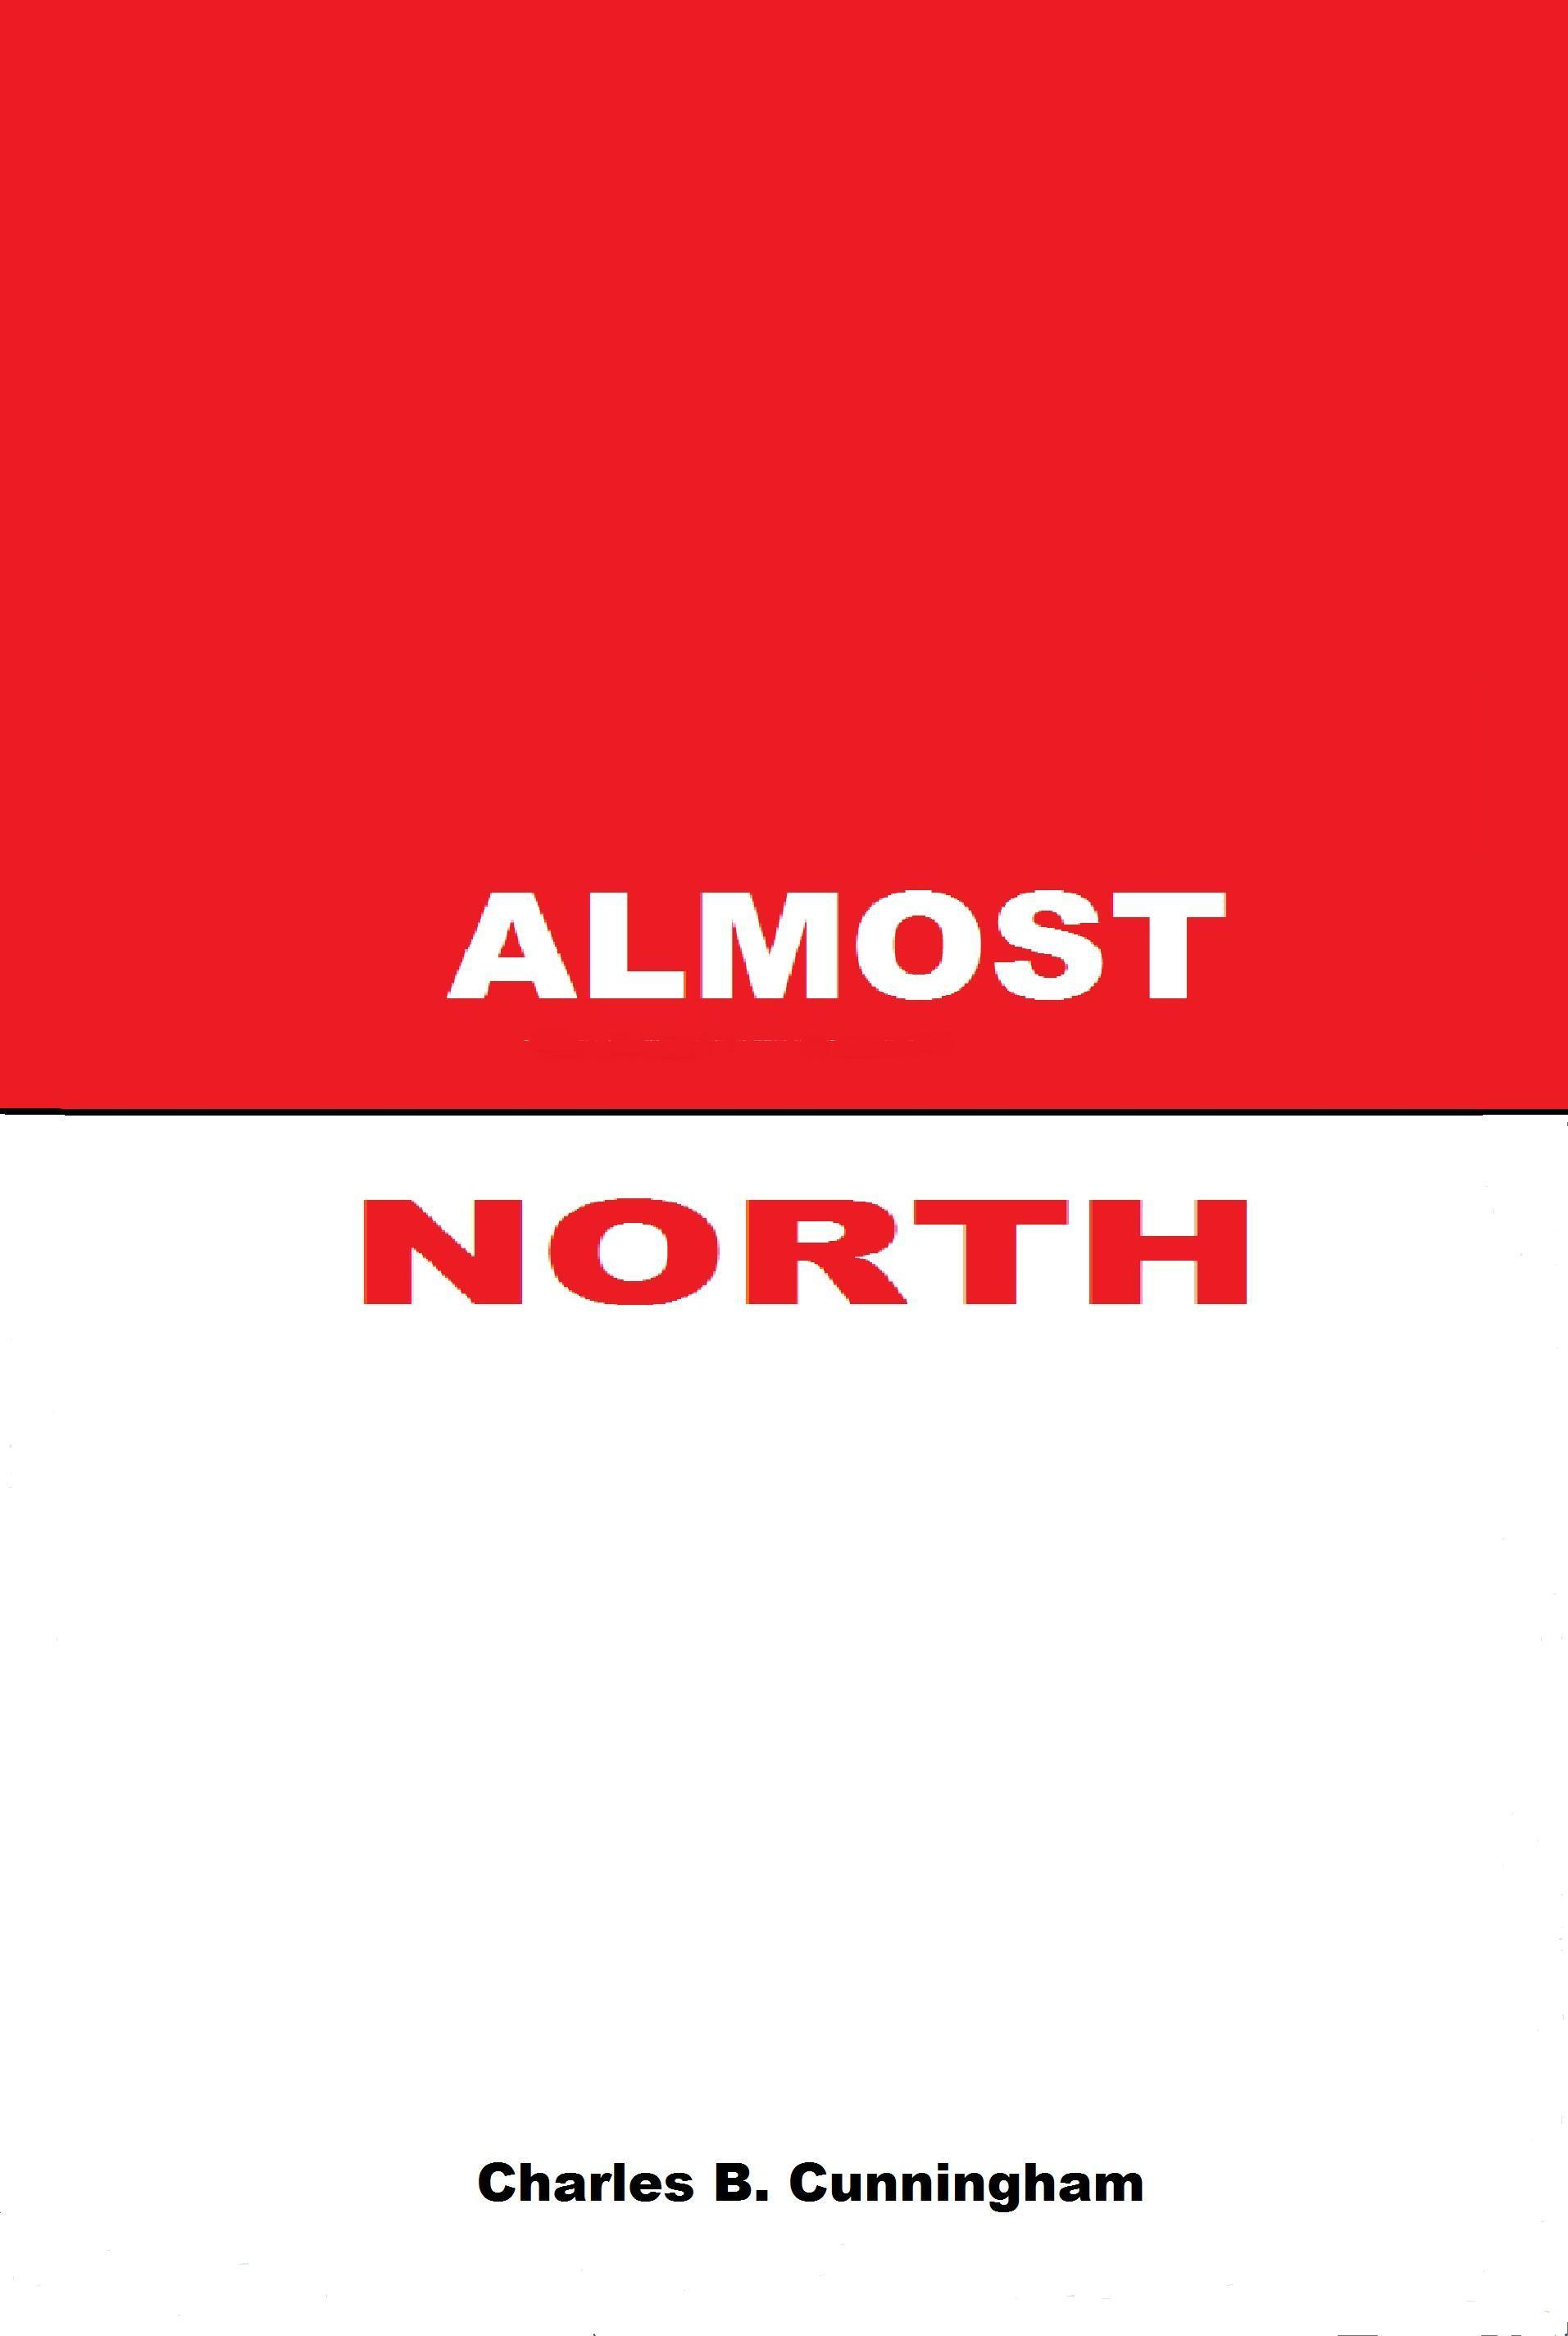 Almost North